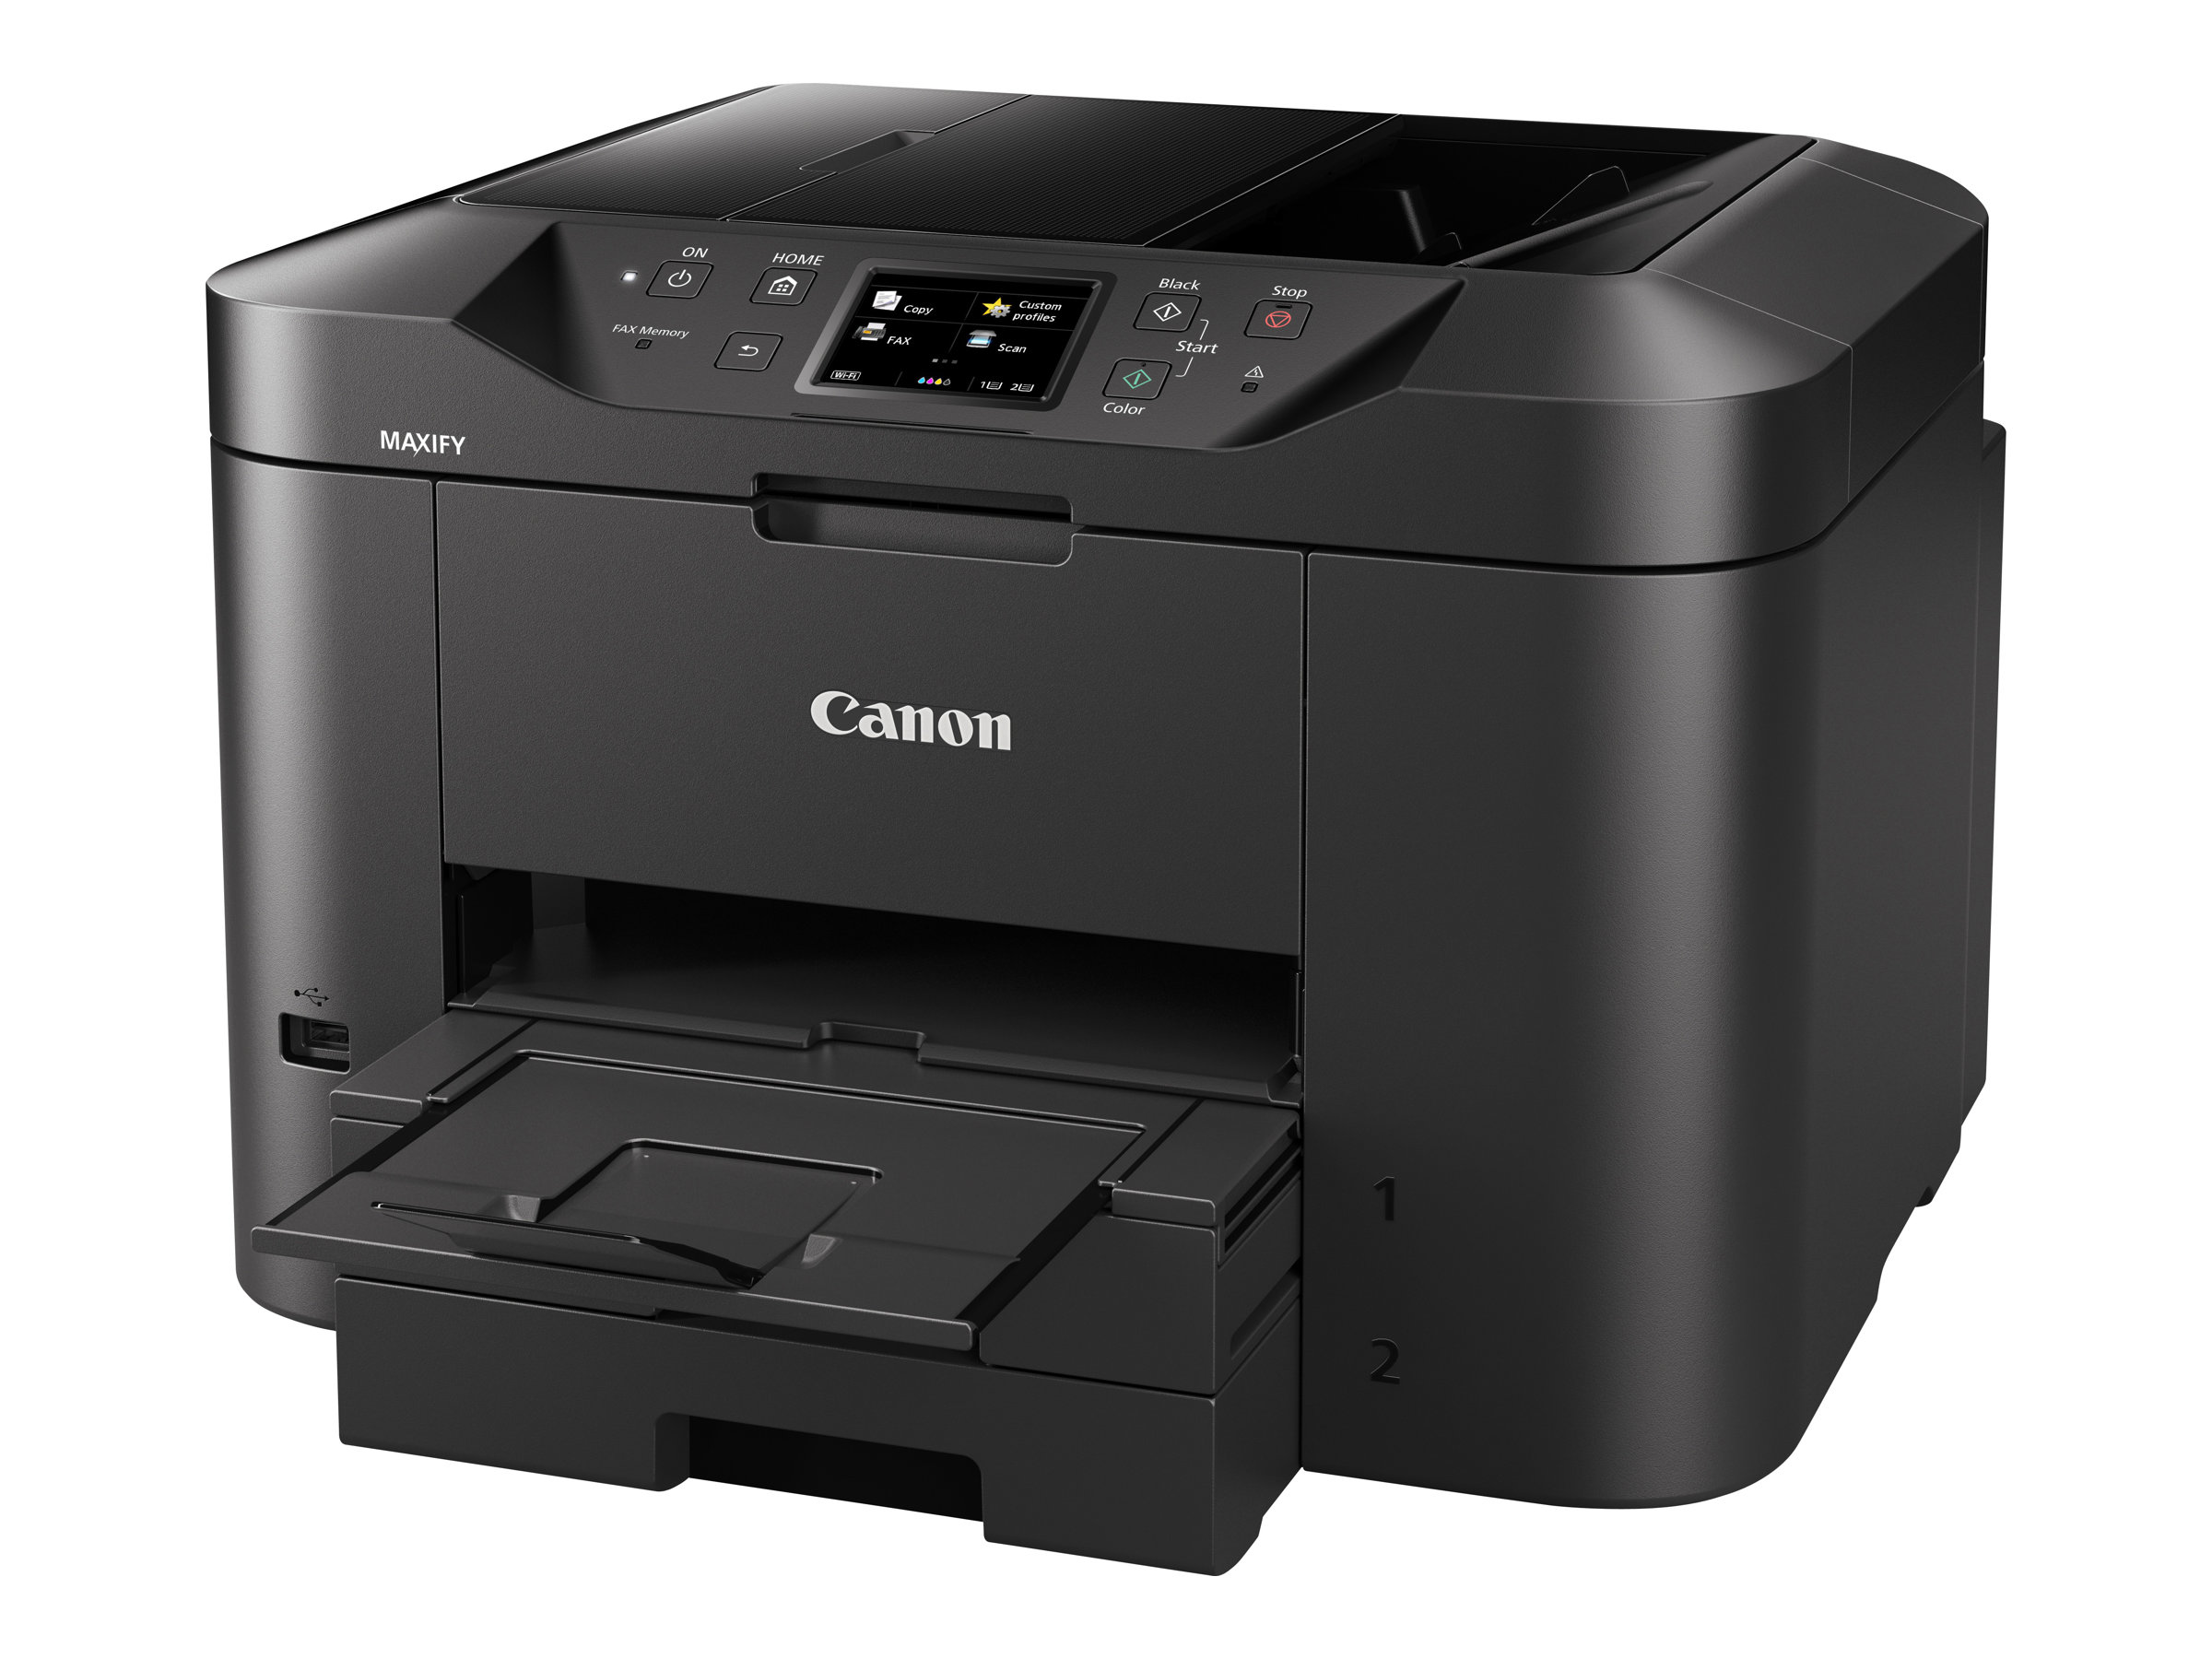 Canon MAXIFY MB2750 - Multifunktionsdrucker - Farbe - Tintenstrahl - A4 (210 x 297 mm)